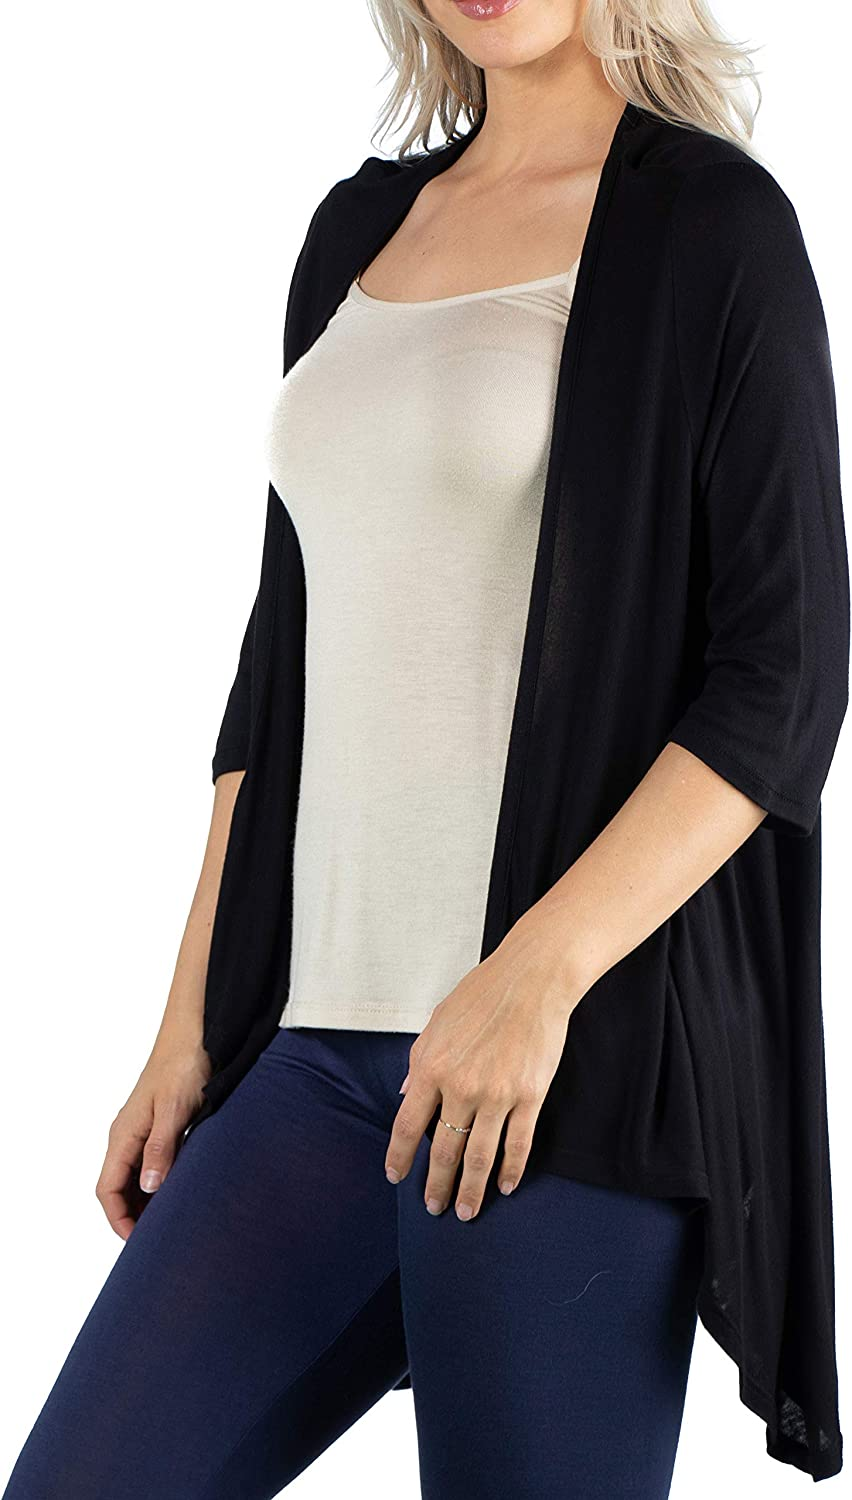 24seven Comfort Apparel Womens Lightweight Elbow Length 3/4 Sleeve Open Front Draped Cardigan Shrug Made in USA -Small-1X